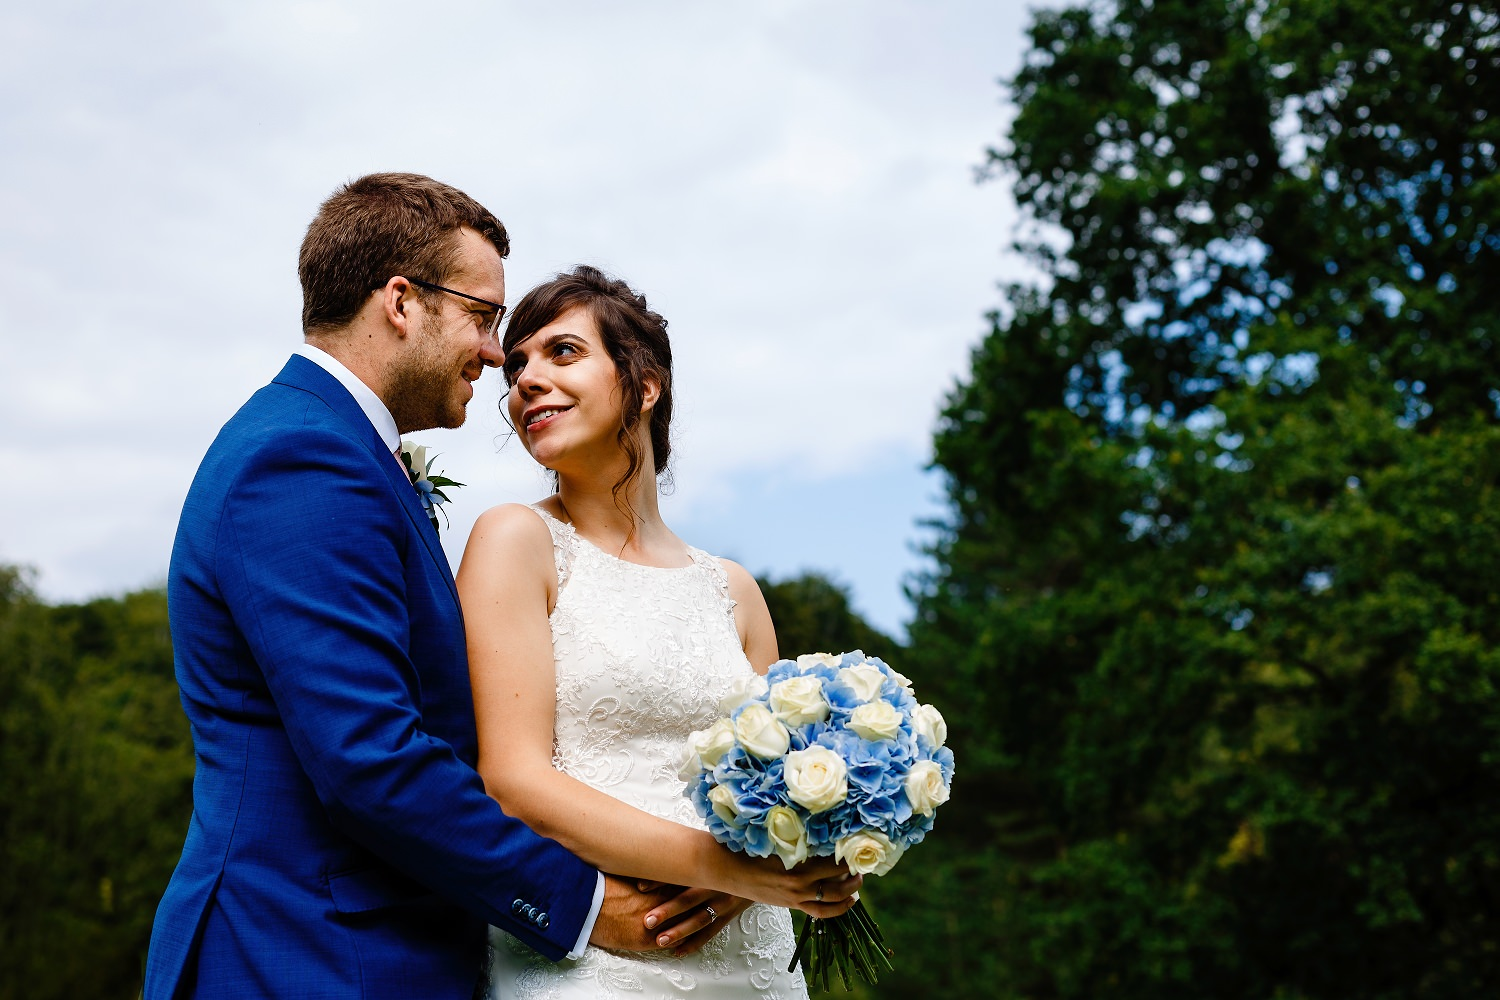 A bride and groom embrace on the lawn at Whirlowbrook Hall Sheffield wedding photography